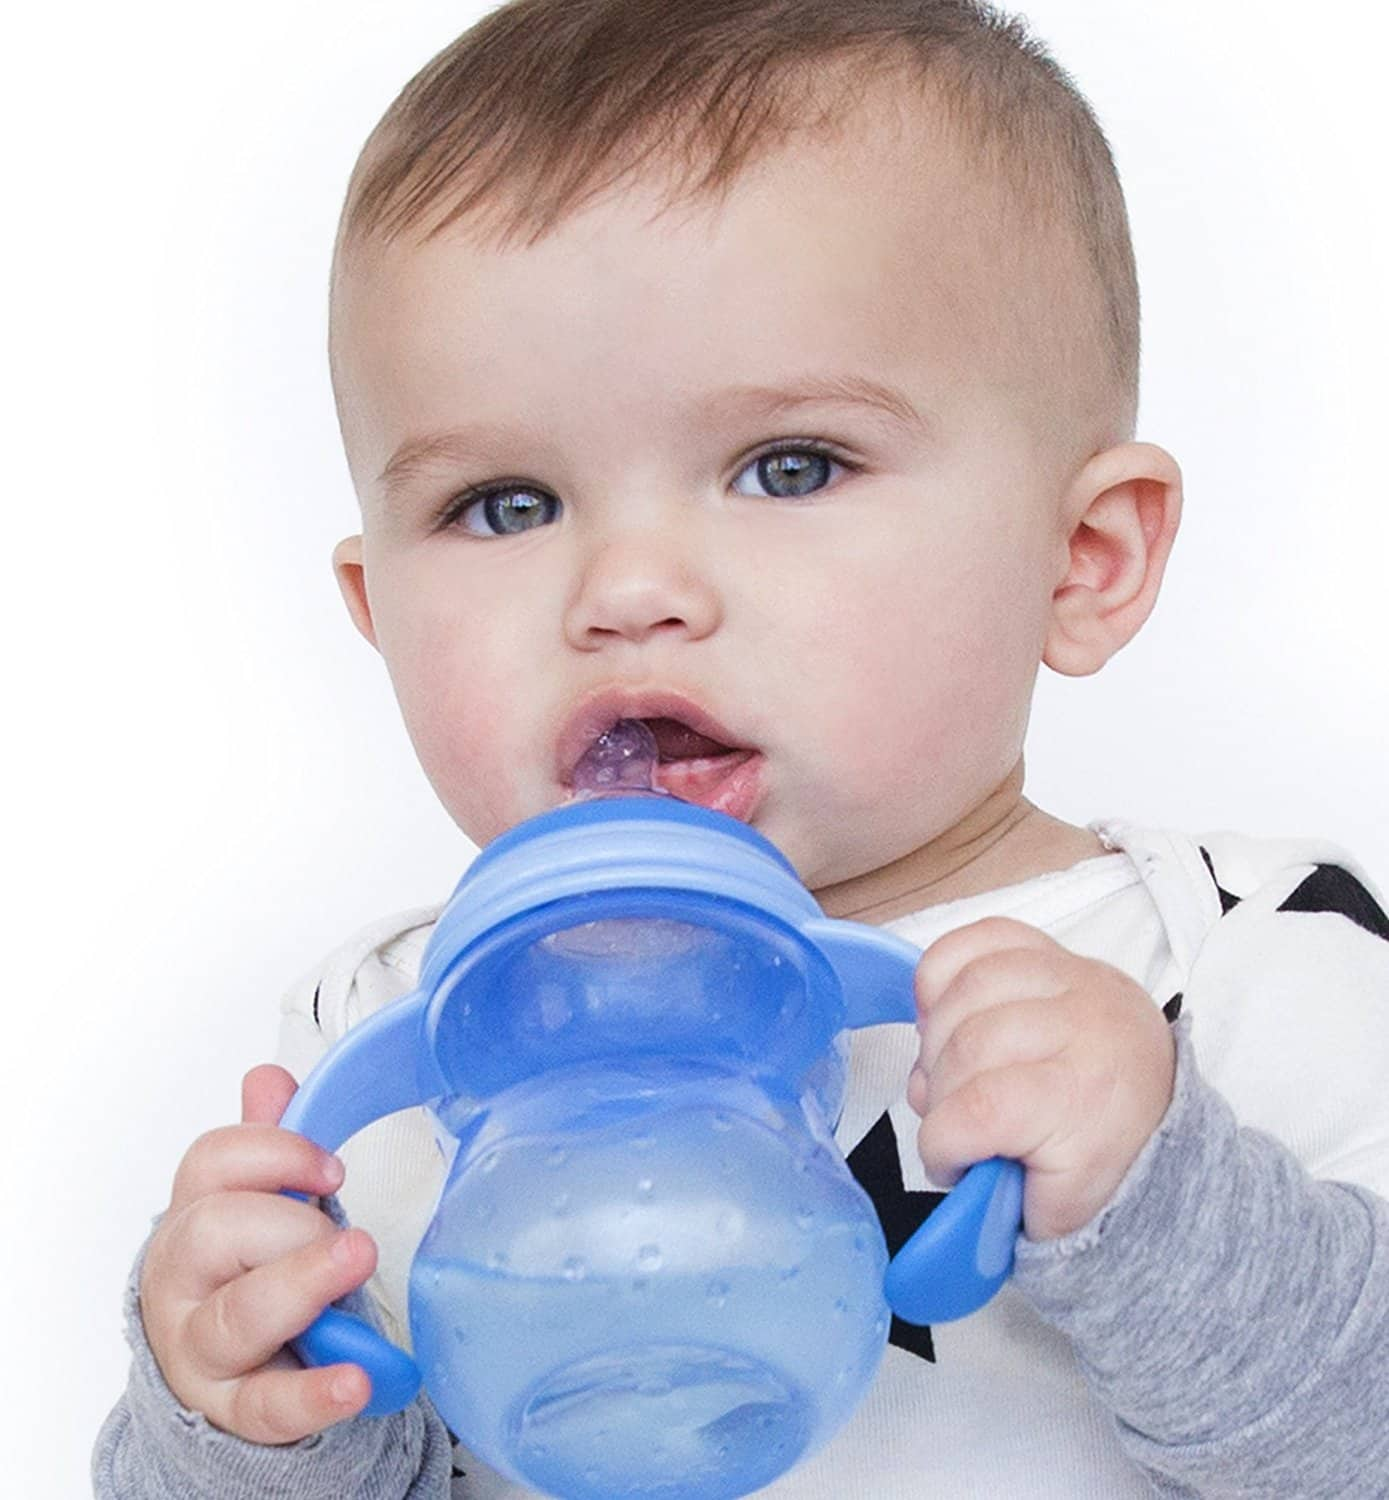 Nuby Non-Drip 3-Stage Wide Neck Bottle to Cup for kids, 8 Ounce, Colors May Vary at reduced price $2.50 @amazon as add-on item